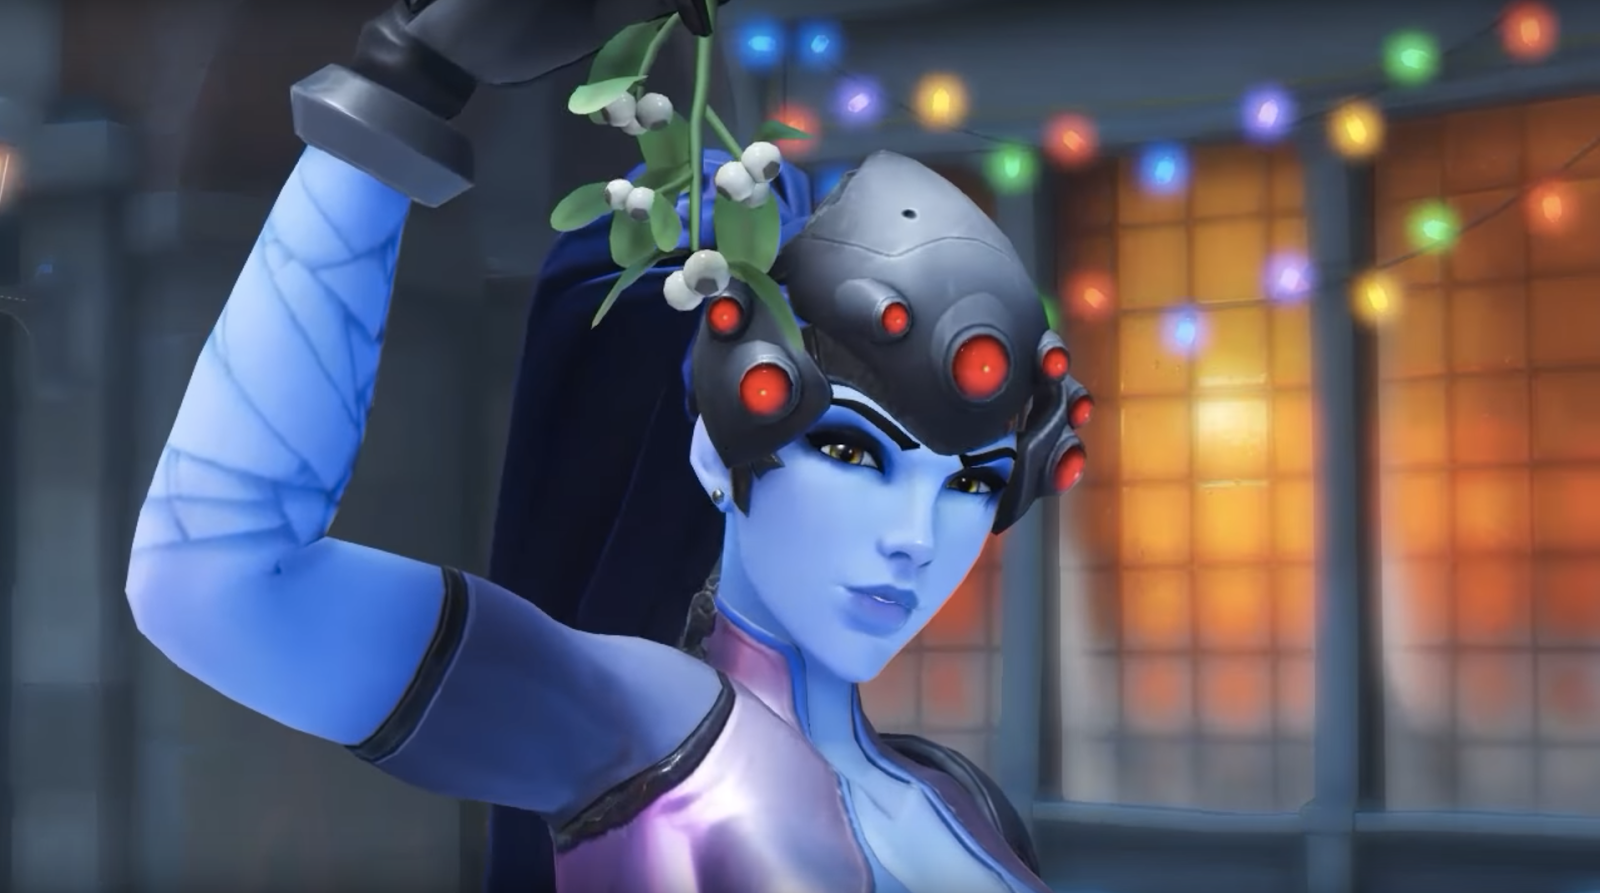 The Overwatch Fandom Is Horny For Widowmaker's New Highlight Animation